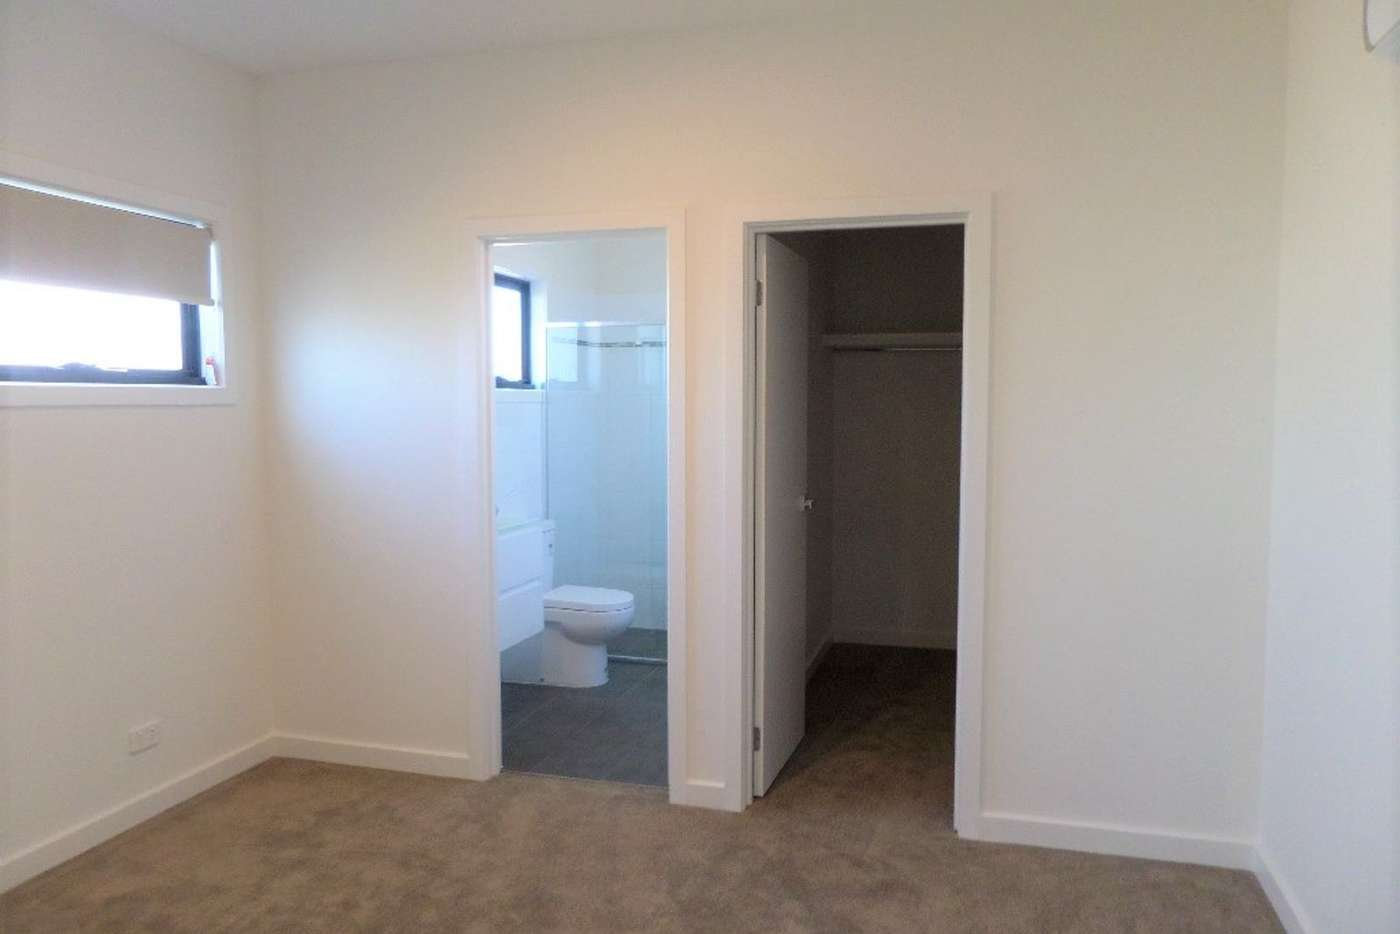 Seventh view of Homely townhouse listing, 2/62 King Street, Airport West VIC 3042